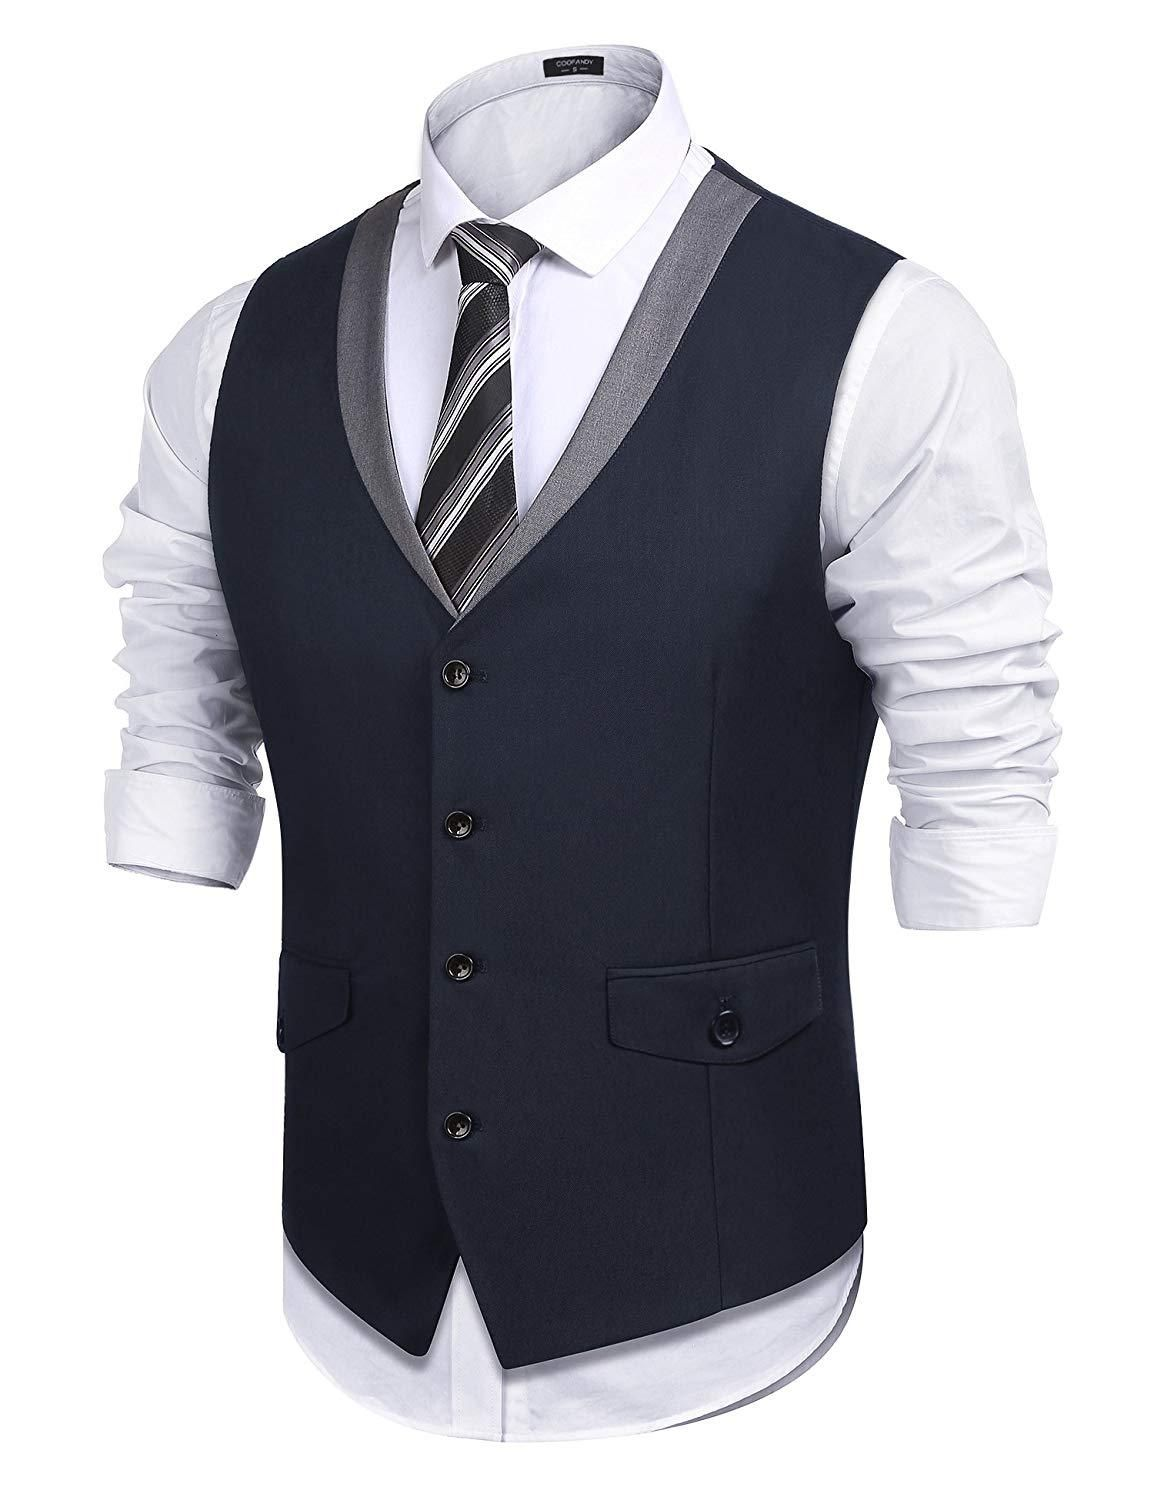 25b3a0c5b0b COOFANDY Men's V-Neck Sleeveless Slim Fit Vest,Jacket Business Suit ...